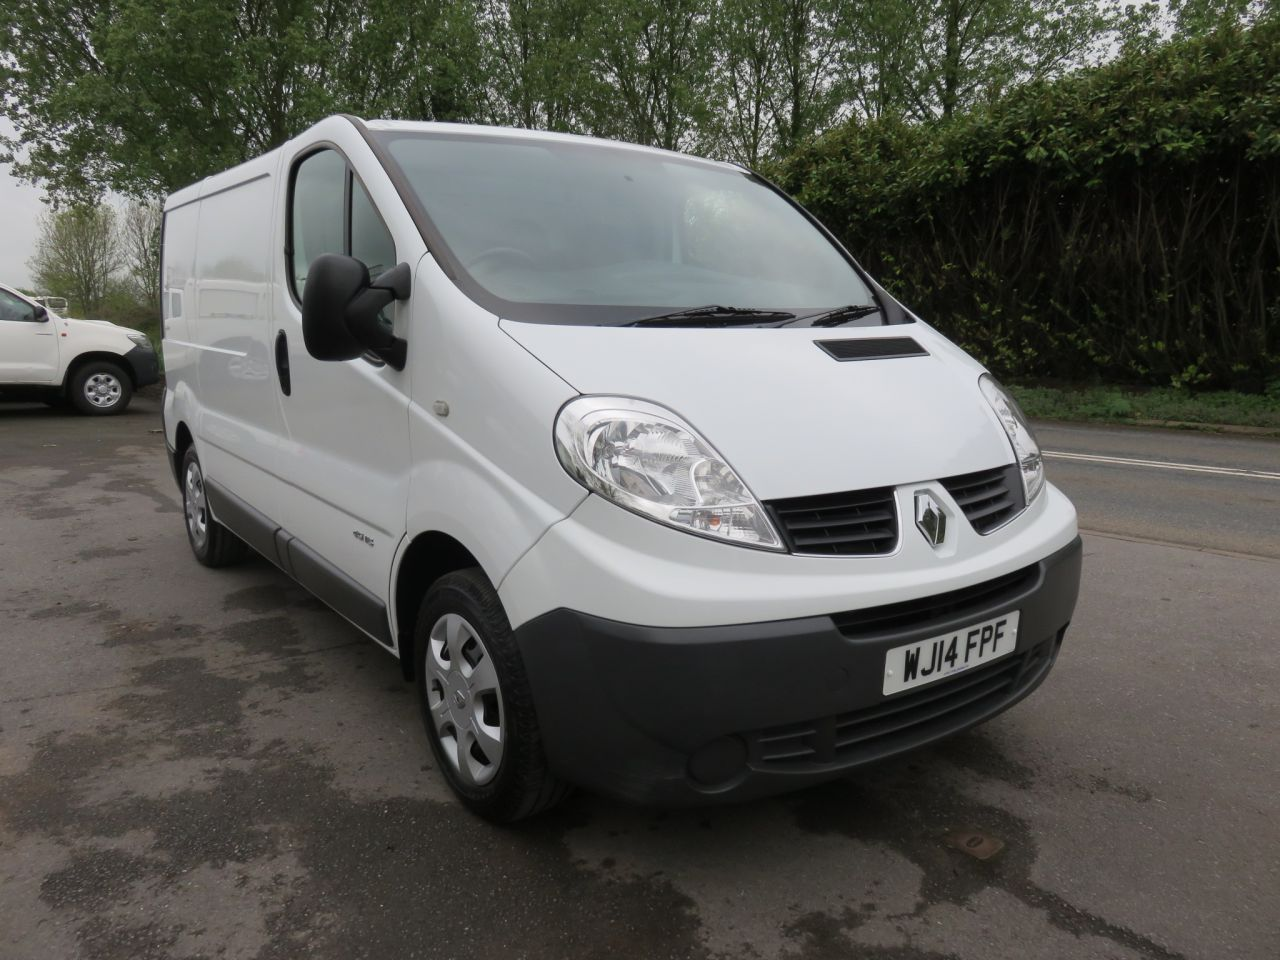 Used Renault Trafic Sl27 Dci For Sale In Exeter Devon